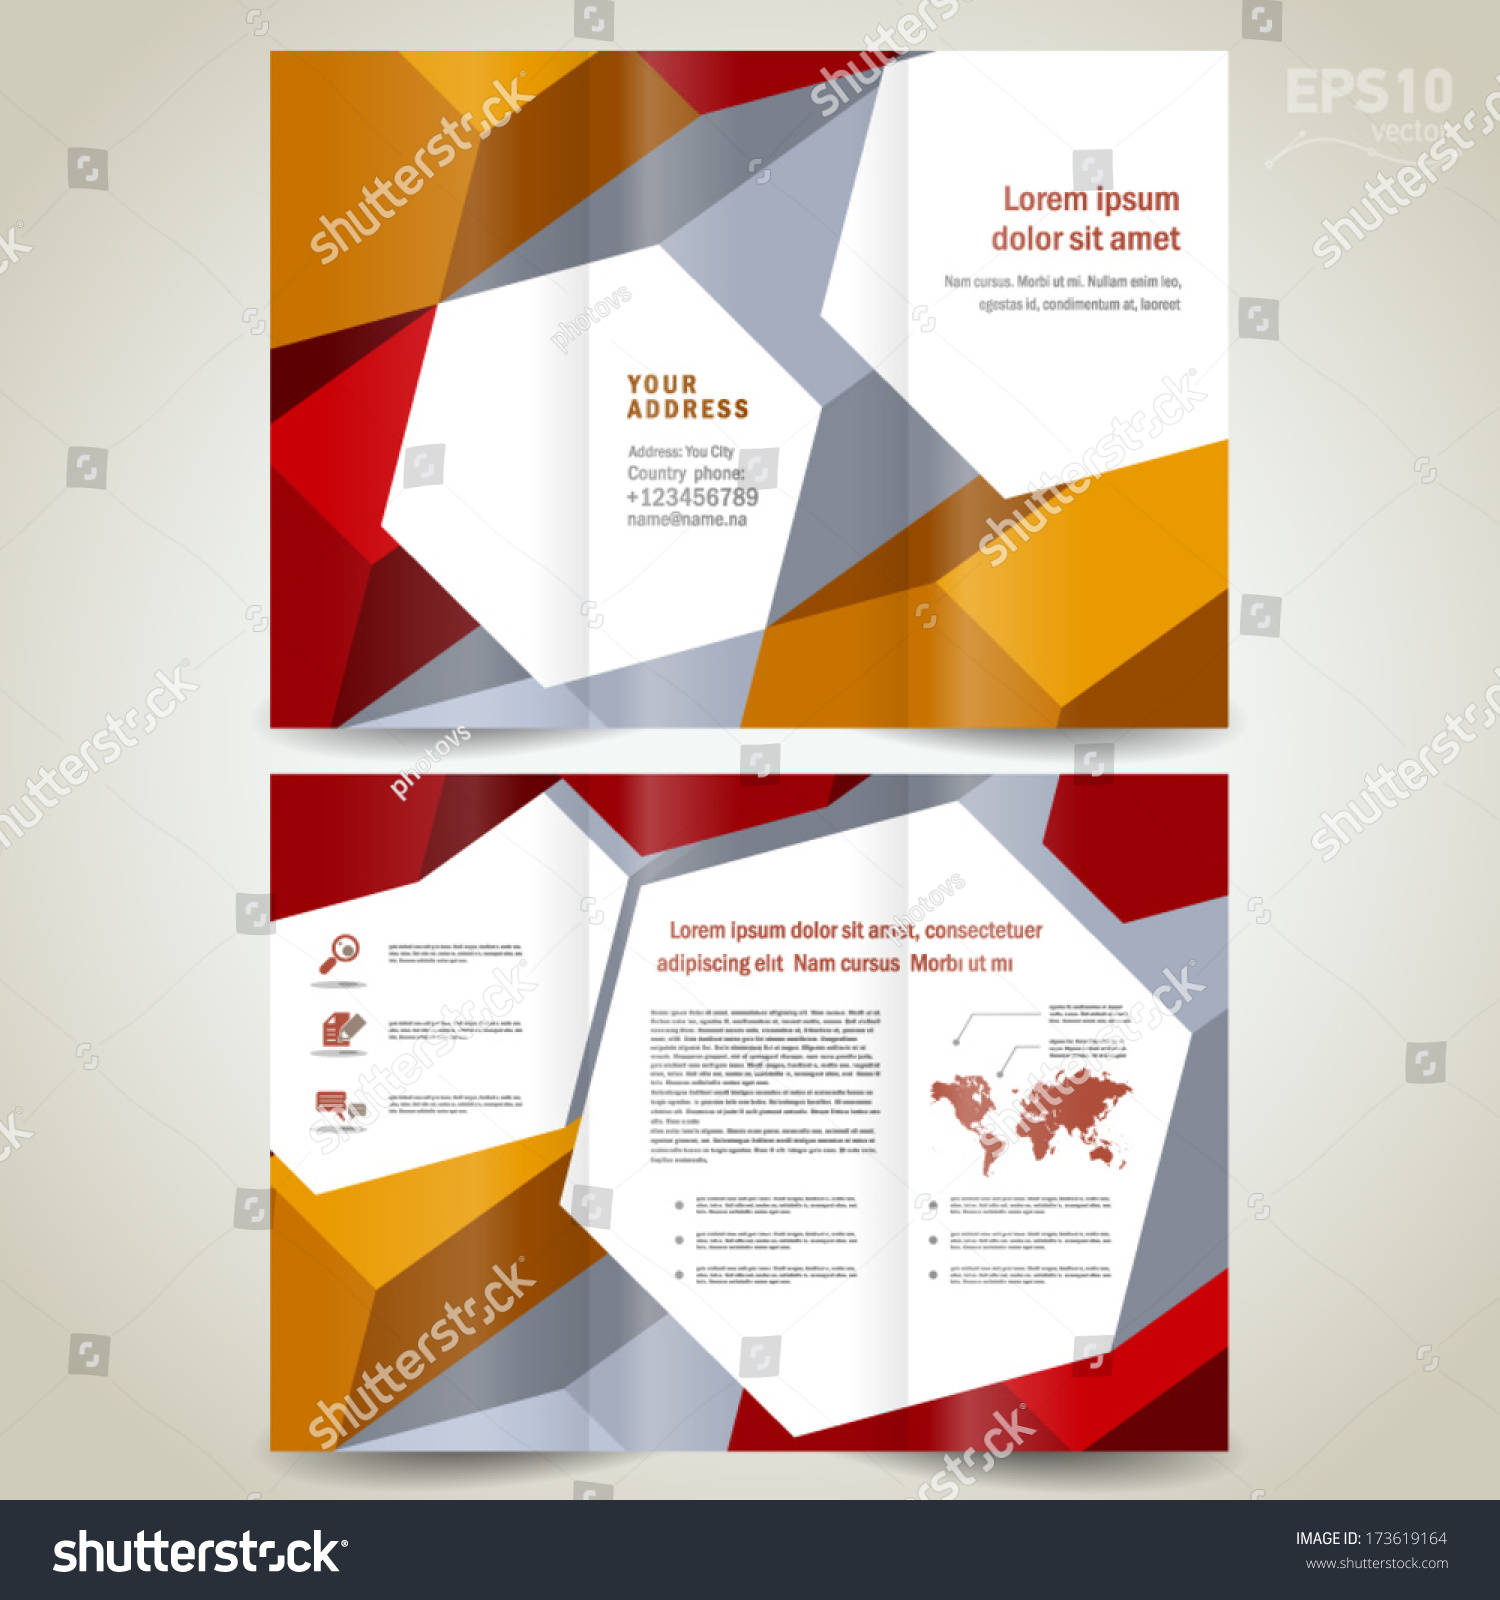 Brochure design template trifold leaflet colored 3d for 3d brochure template